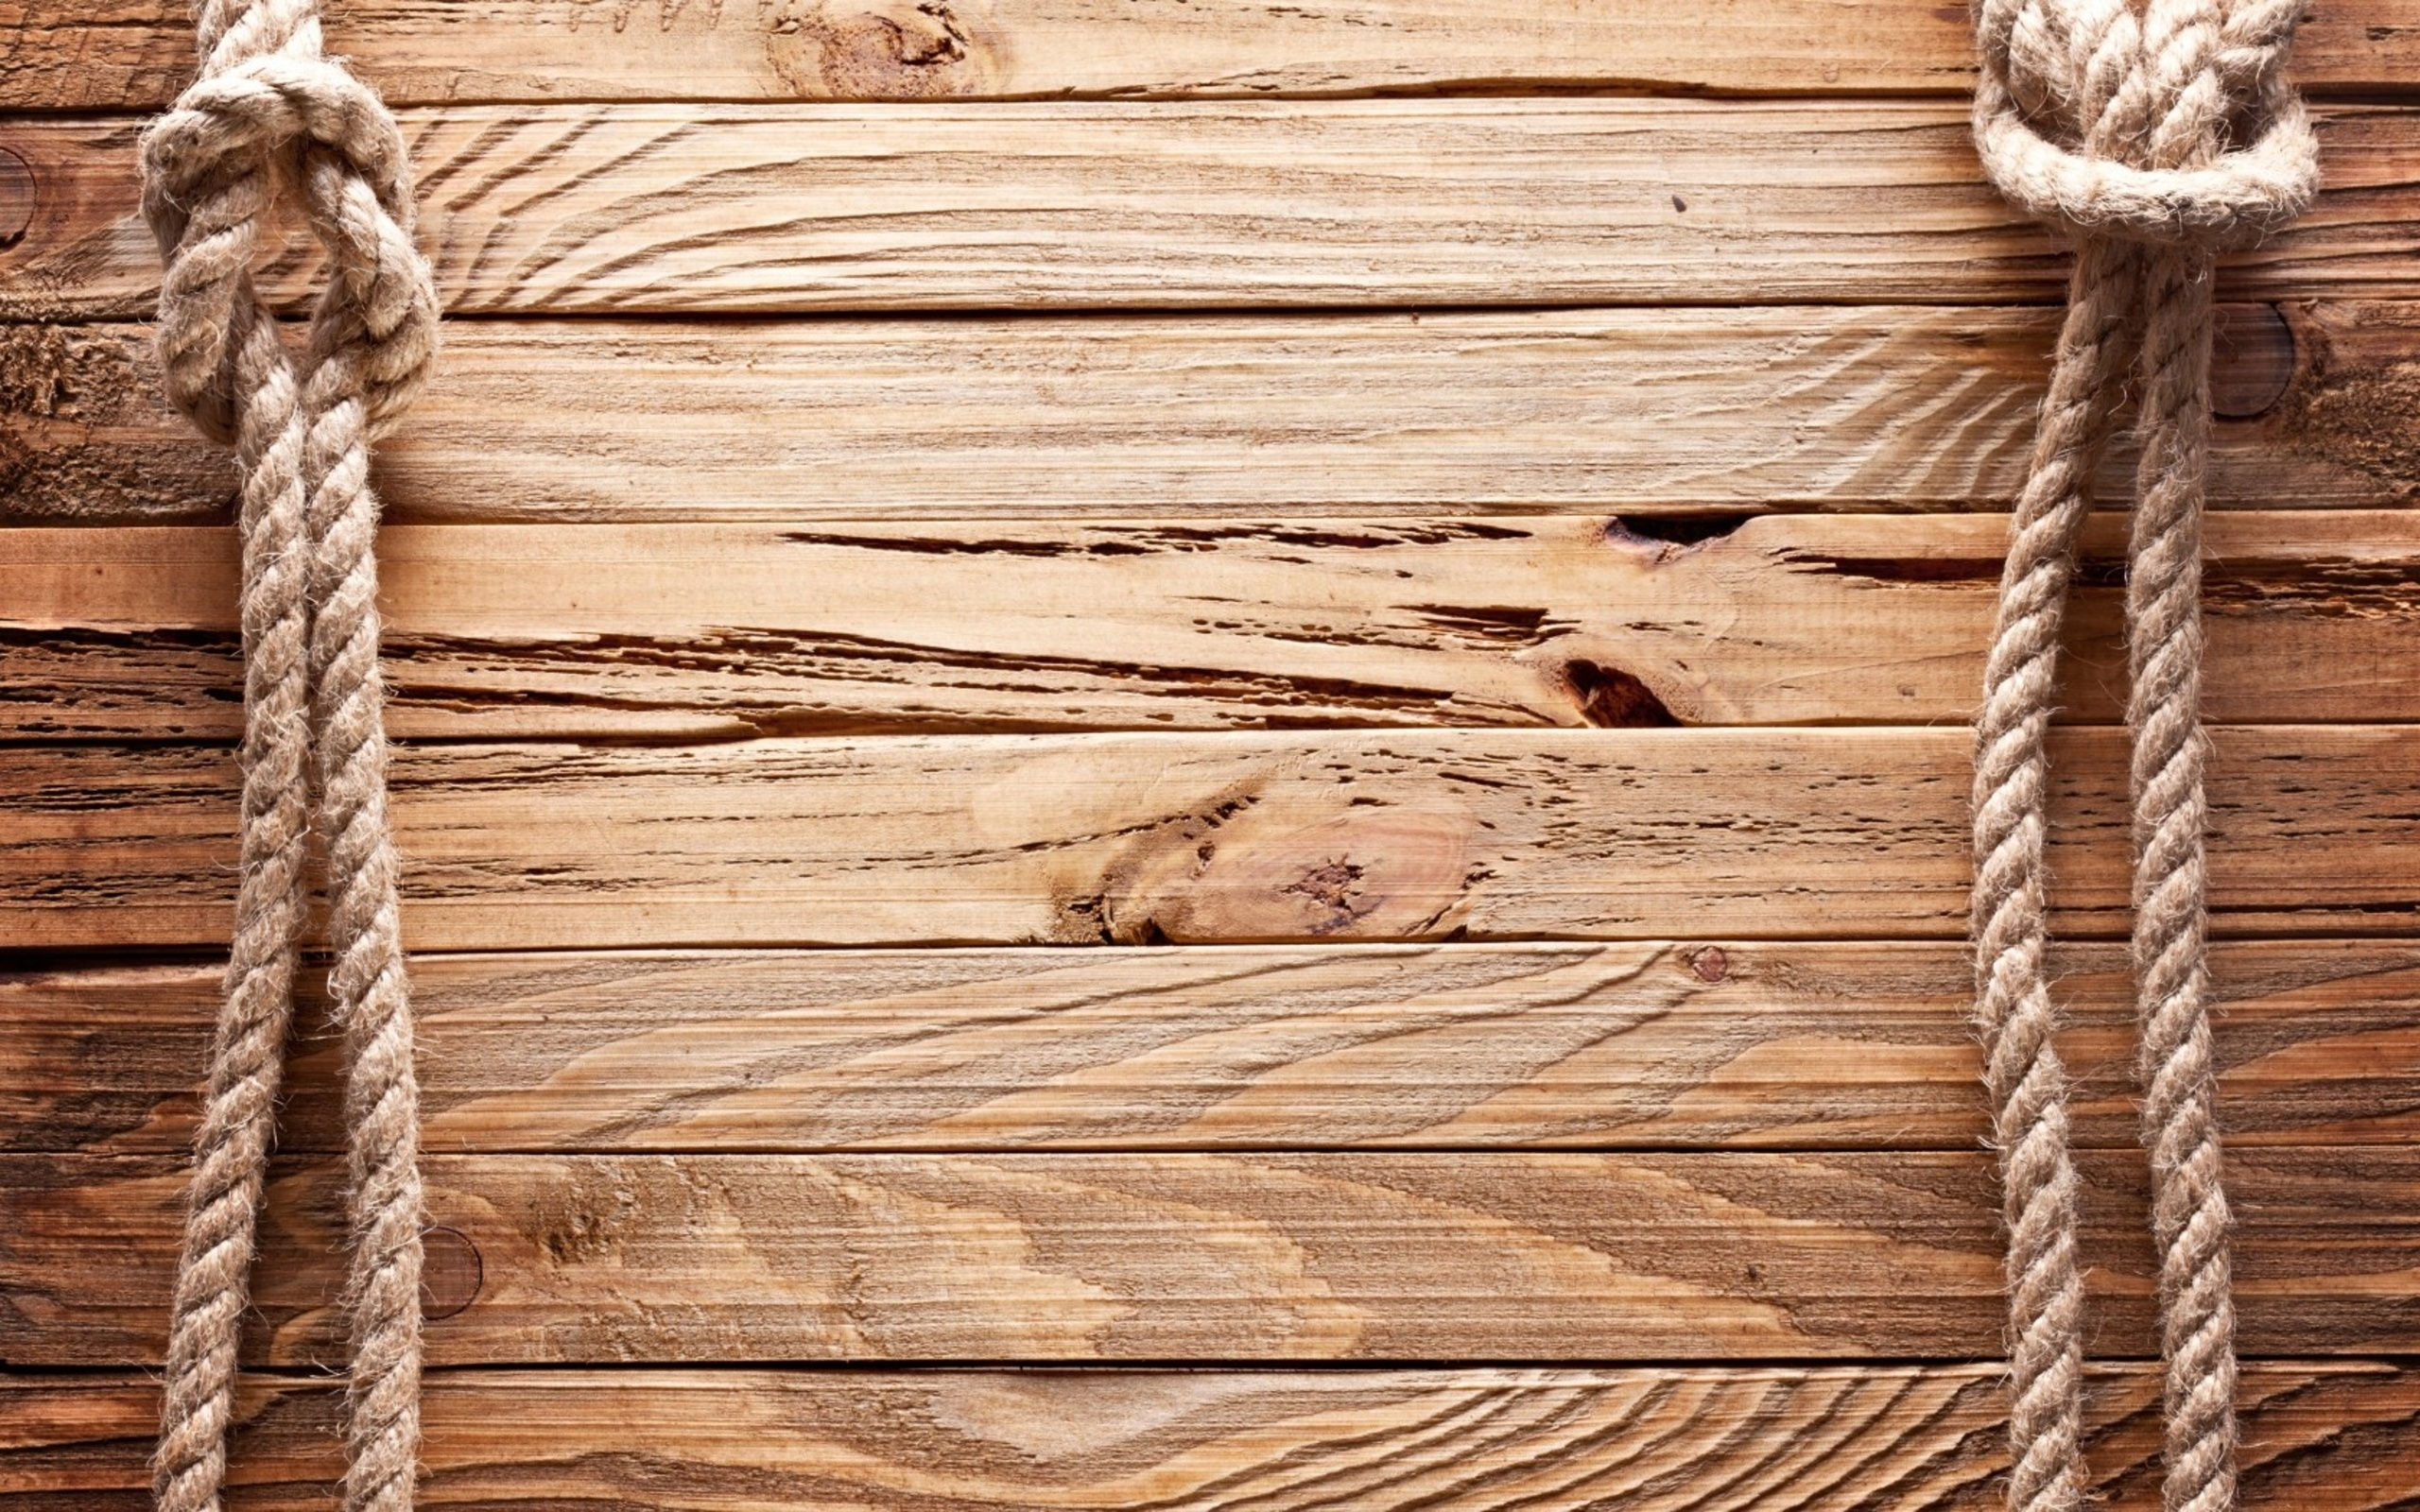 195 Wood HD Wallpapers   Background Images   Wallpaper Abyss HD Wallpaper   Background Image ID 370797